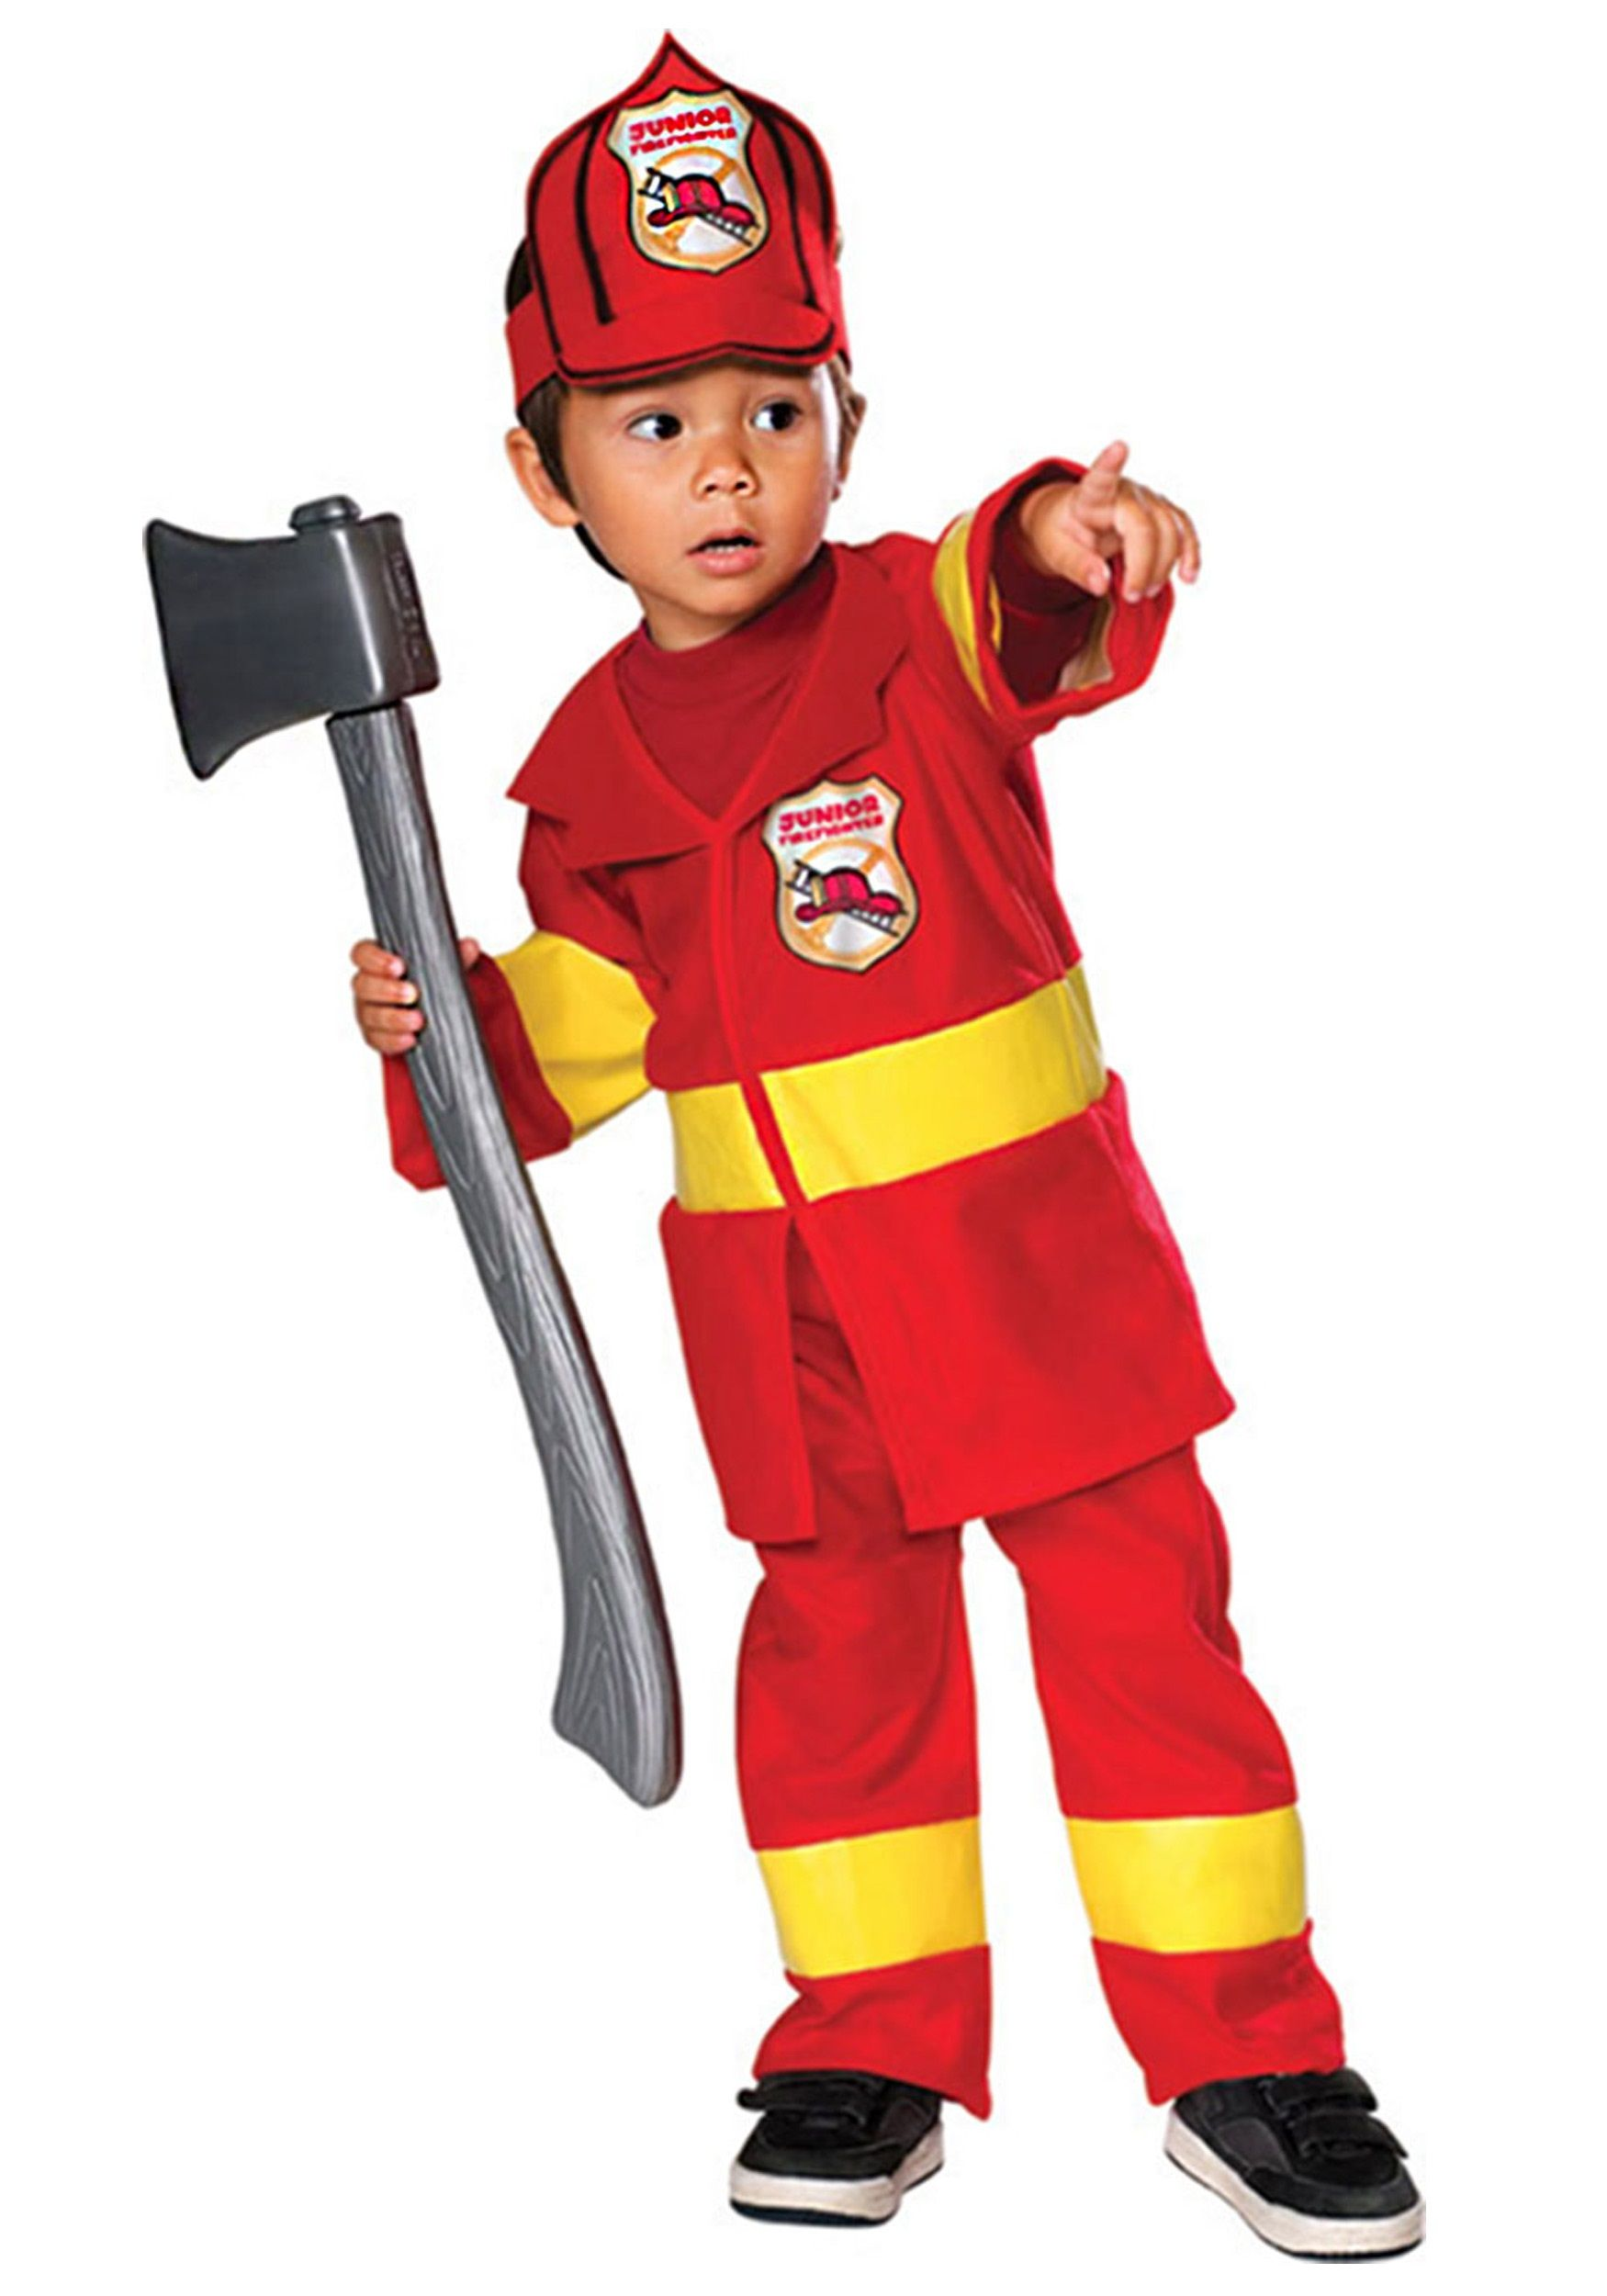 5 fun potty training ideas for boys - Fire Girl Halloween Costume